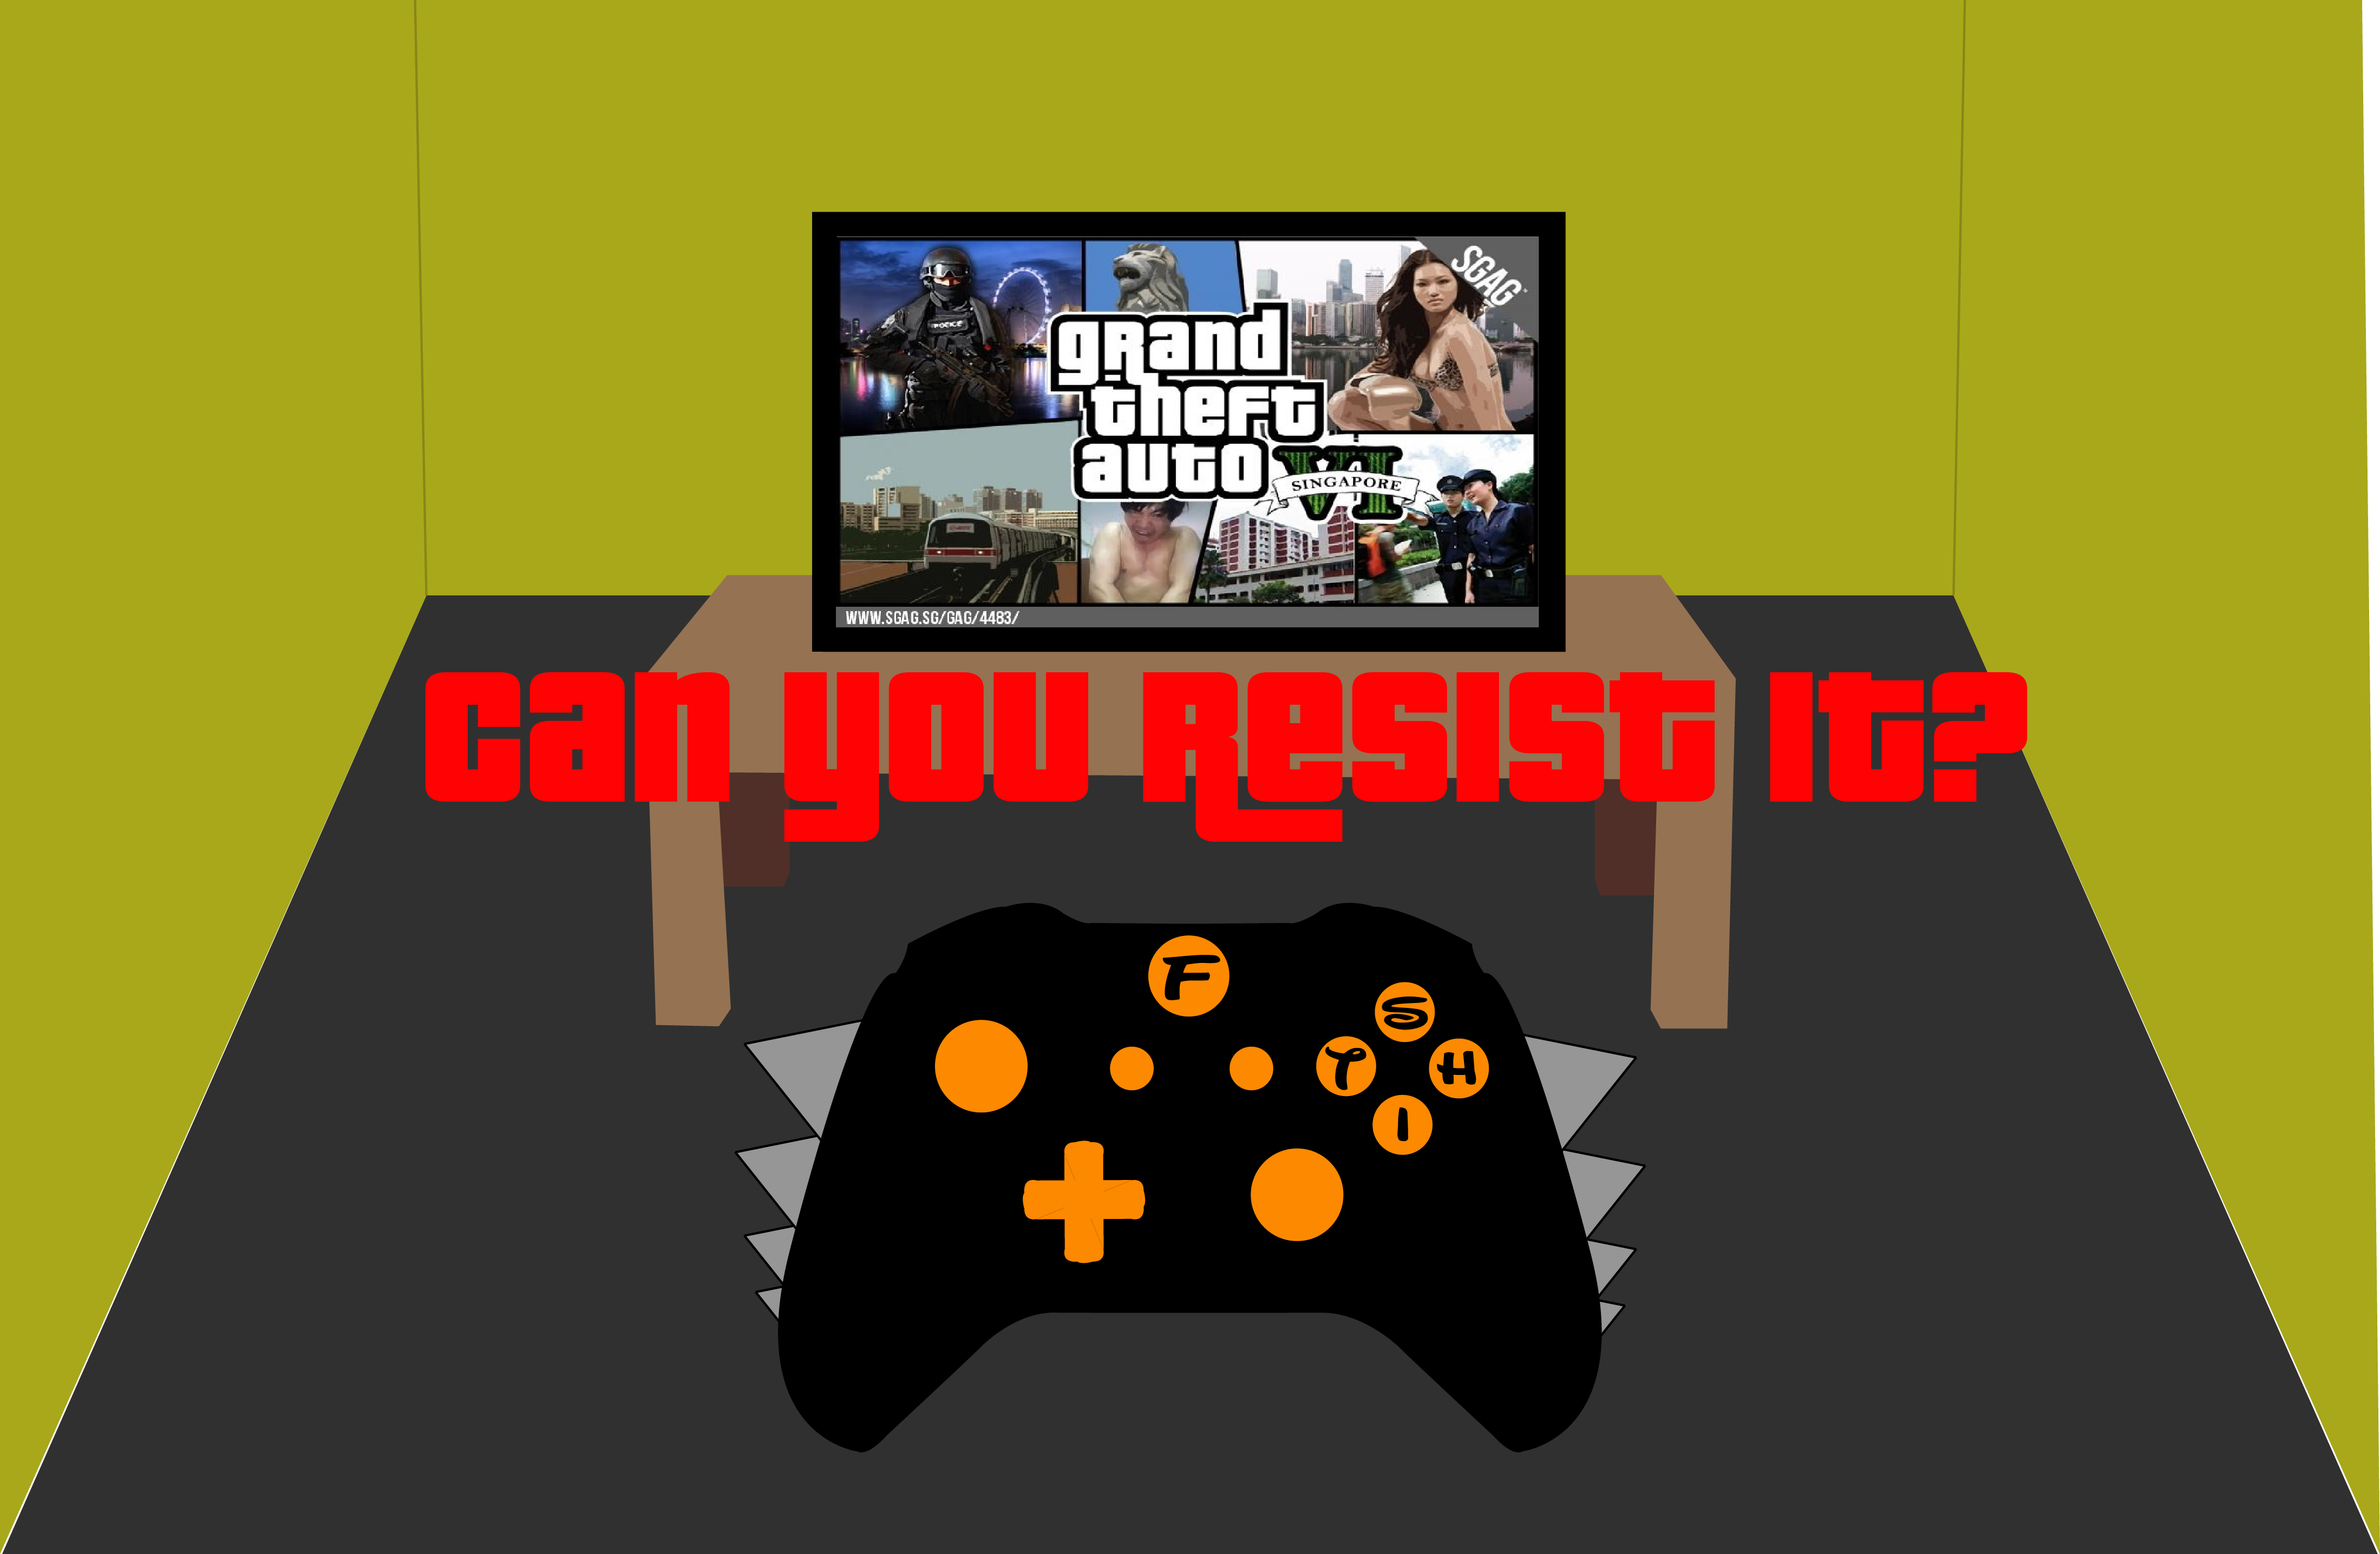 Can you resist it?